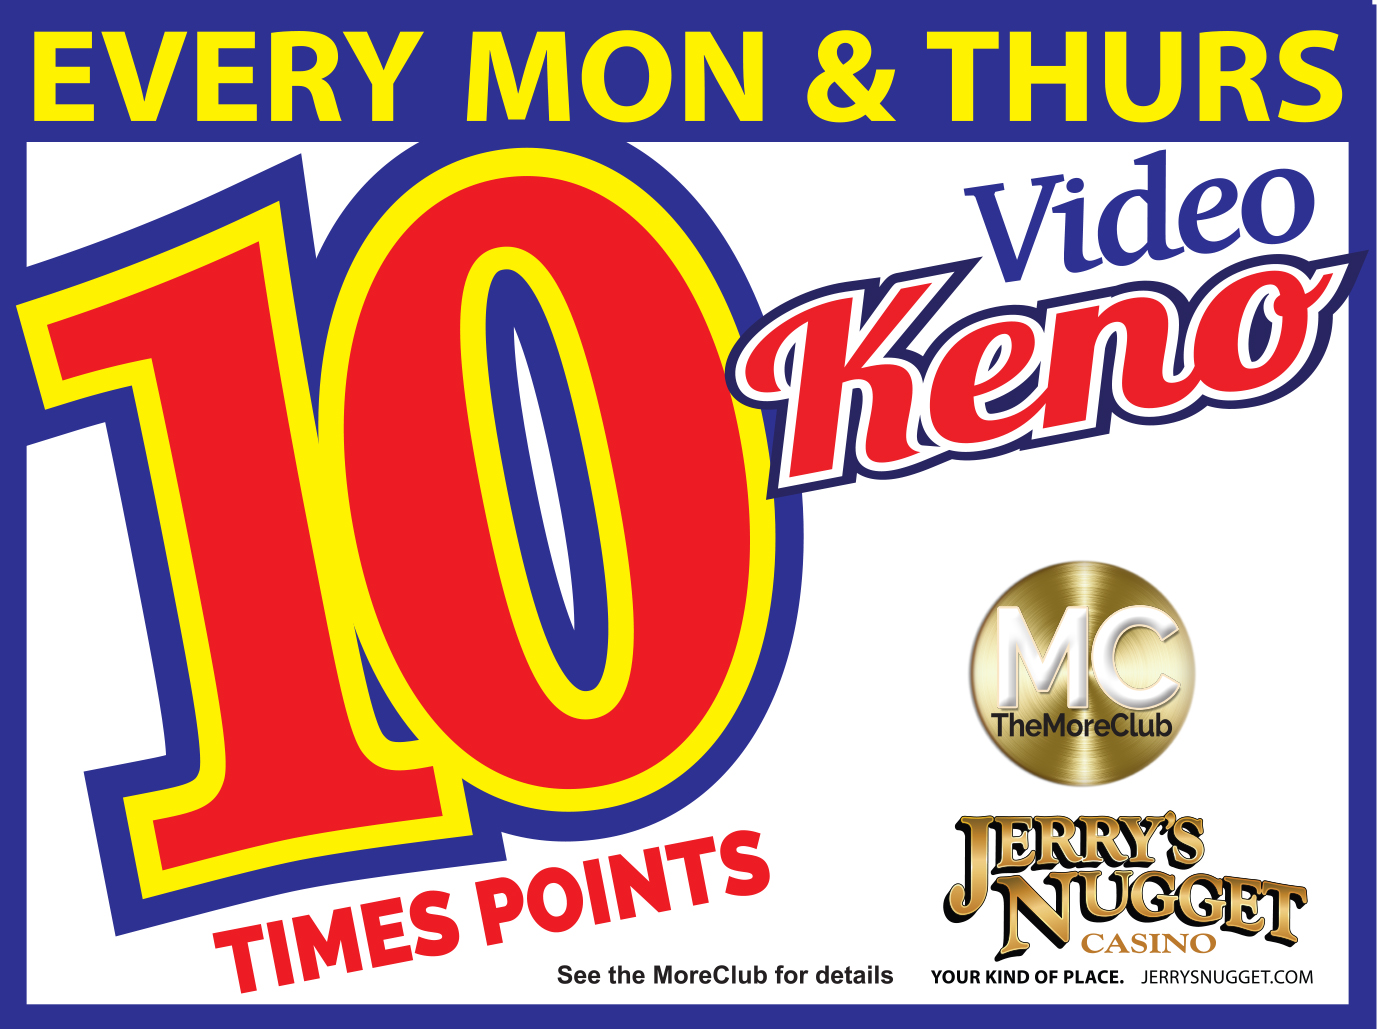 10x Points on Video Keno